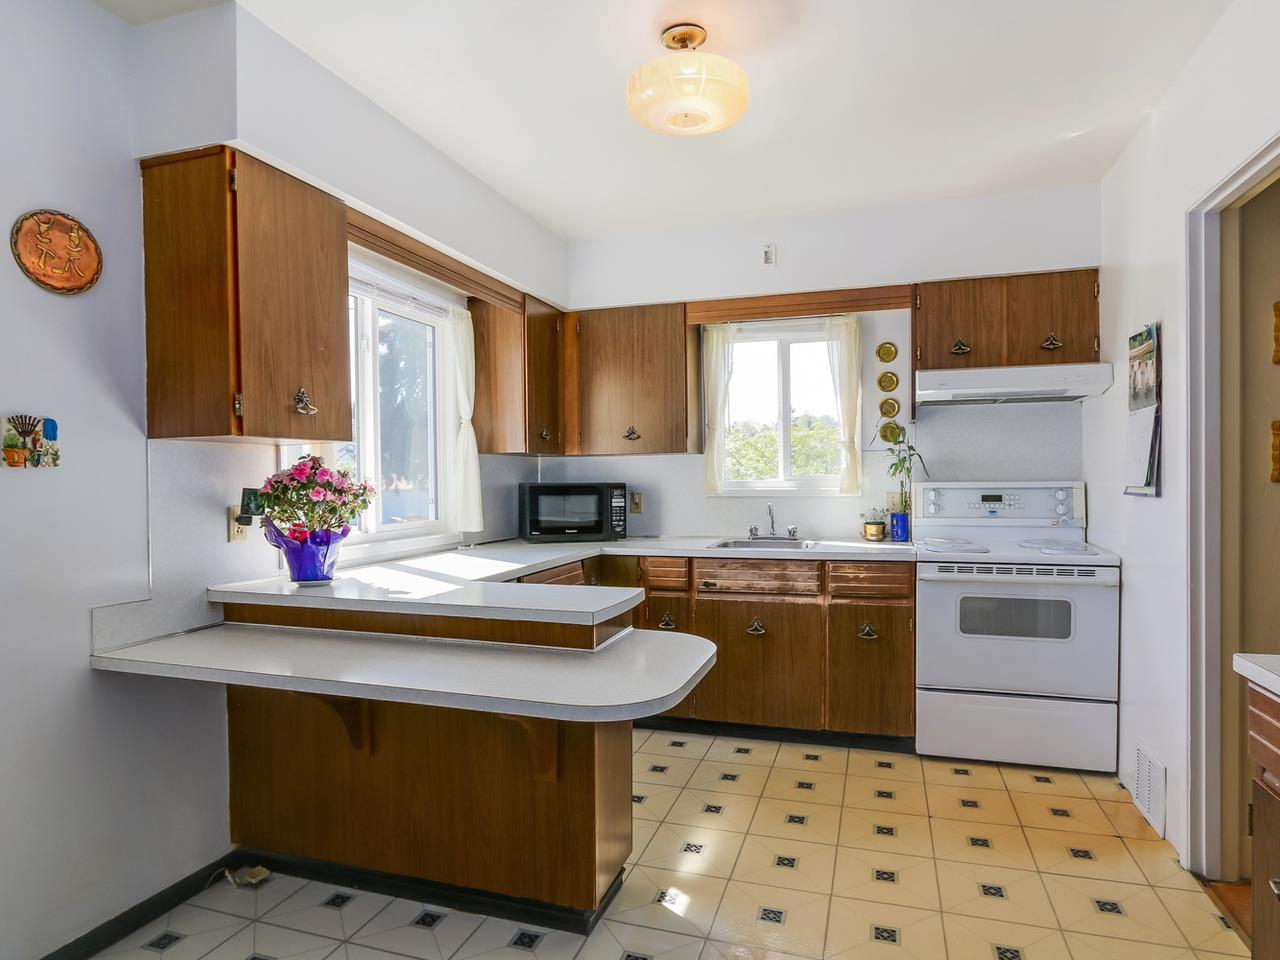 Photo 11: 2796 W 21ST Avenue in Vancouver: Arbutus House for sale (Vancouver West)  : MLS(r) # R2078868